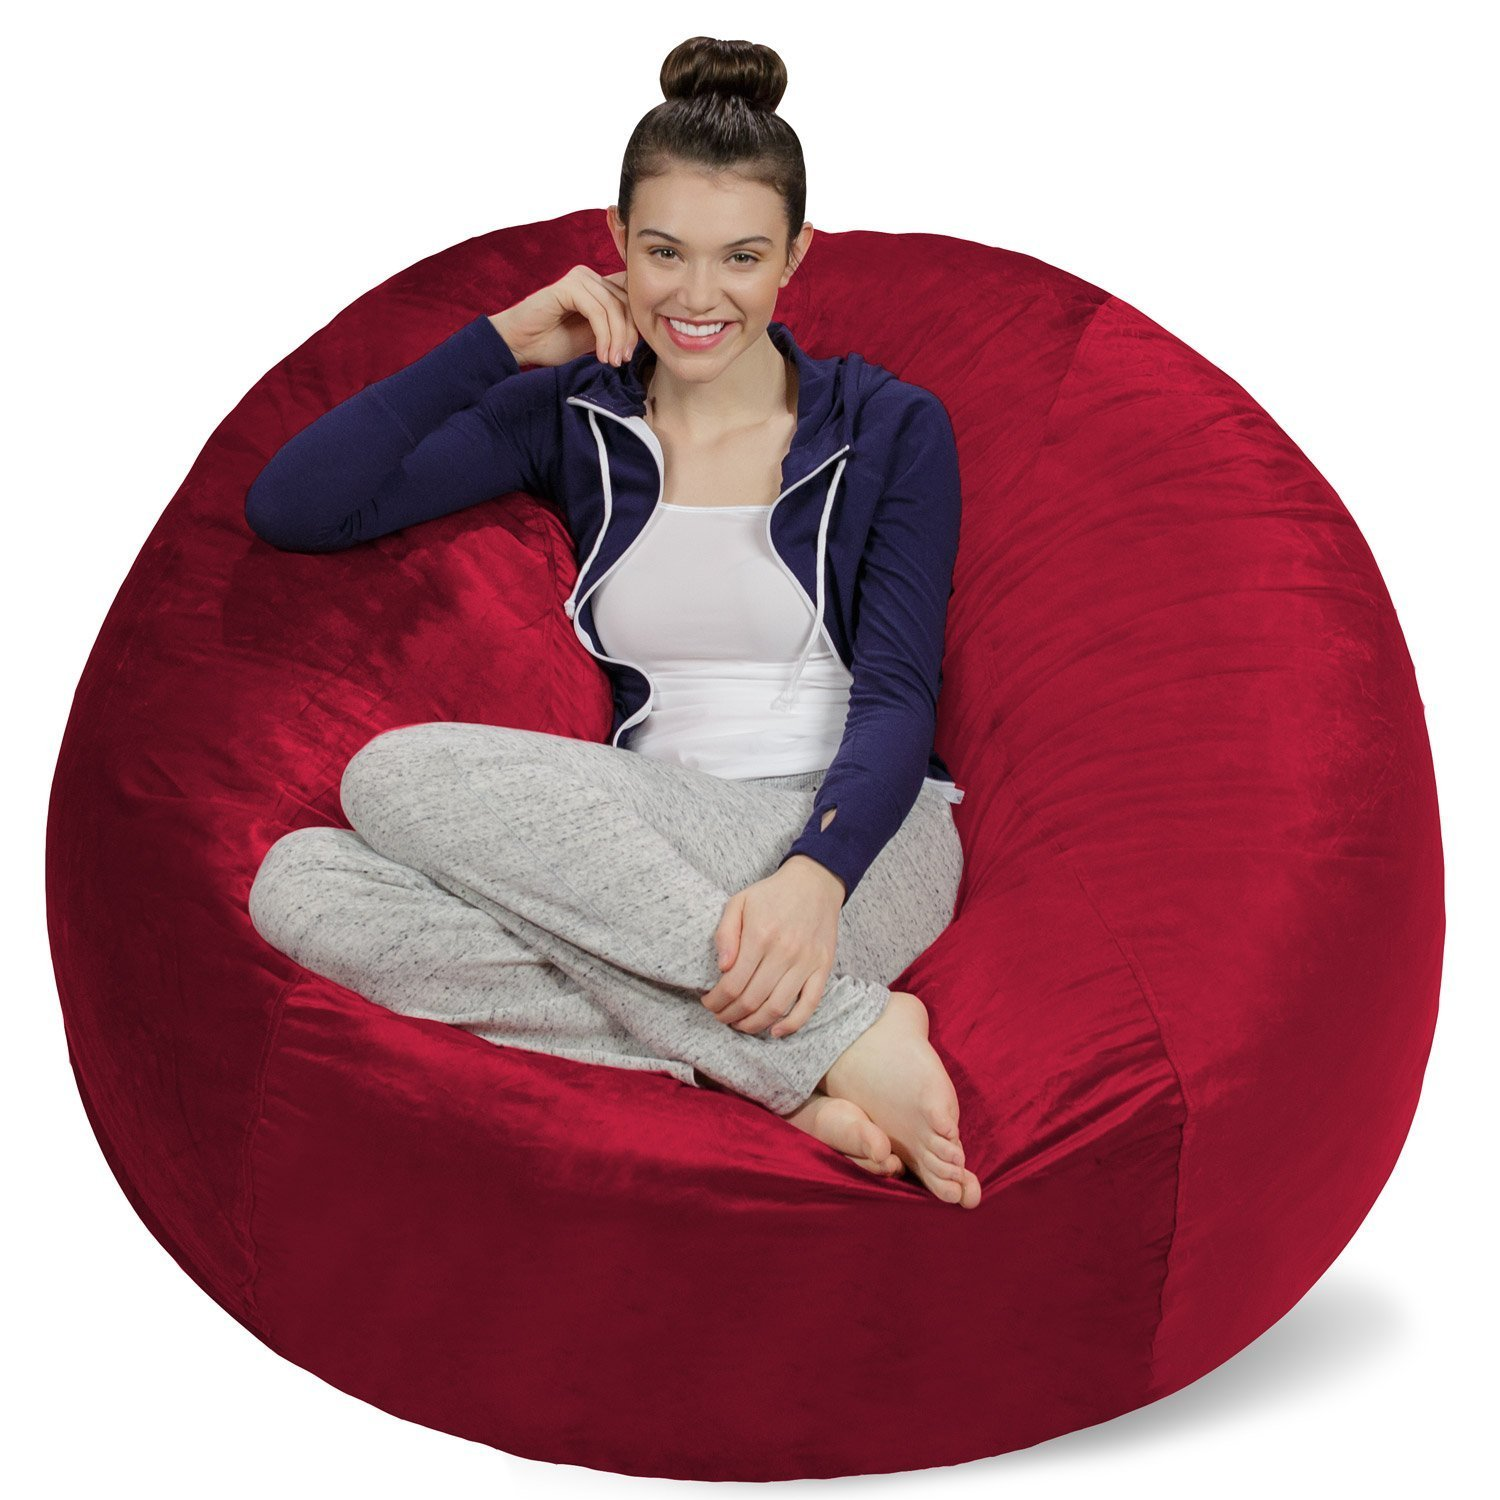 Sofa Sack U2013 Bean Bags Bean Bag Chair, 5 Feet, Cinnabar